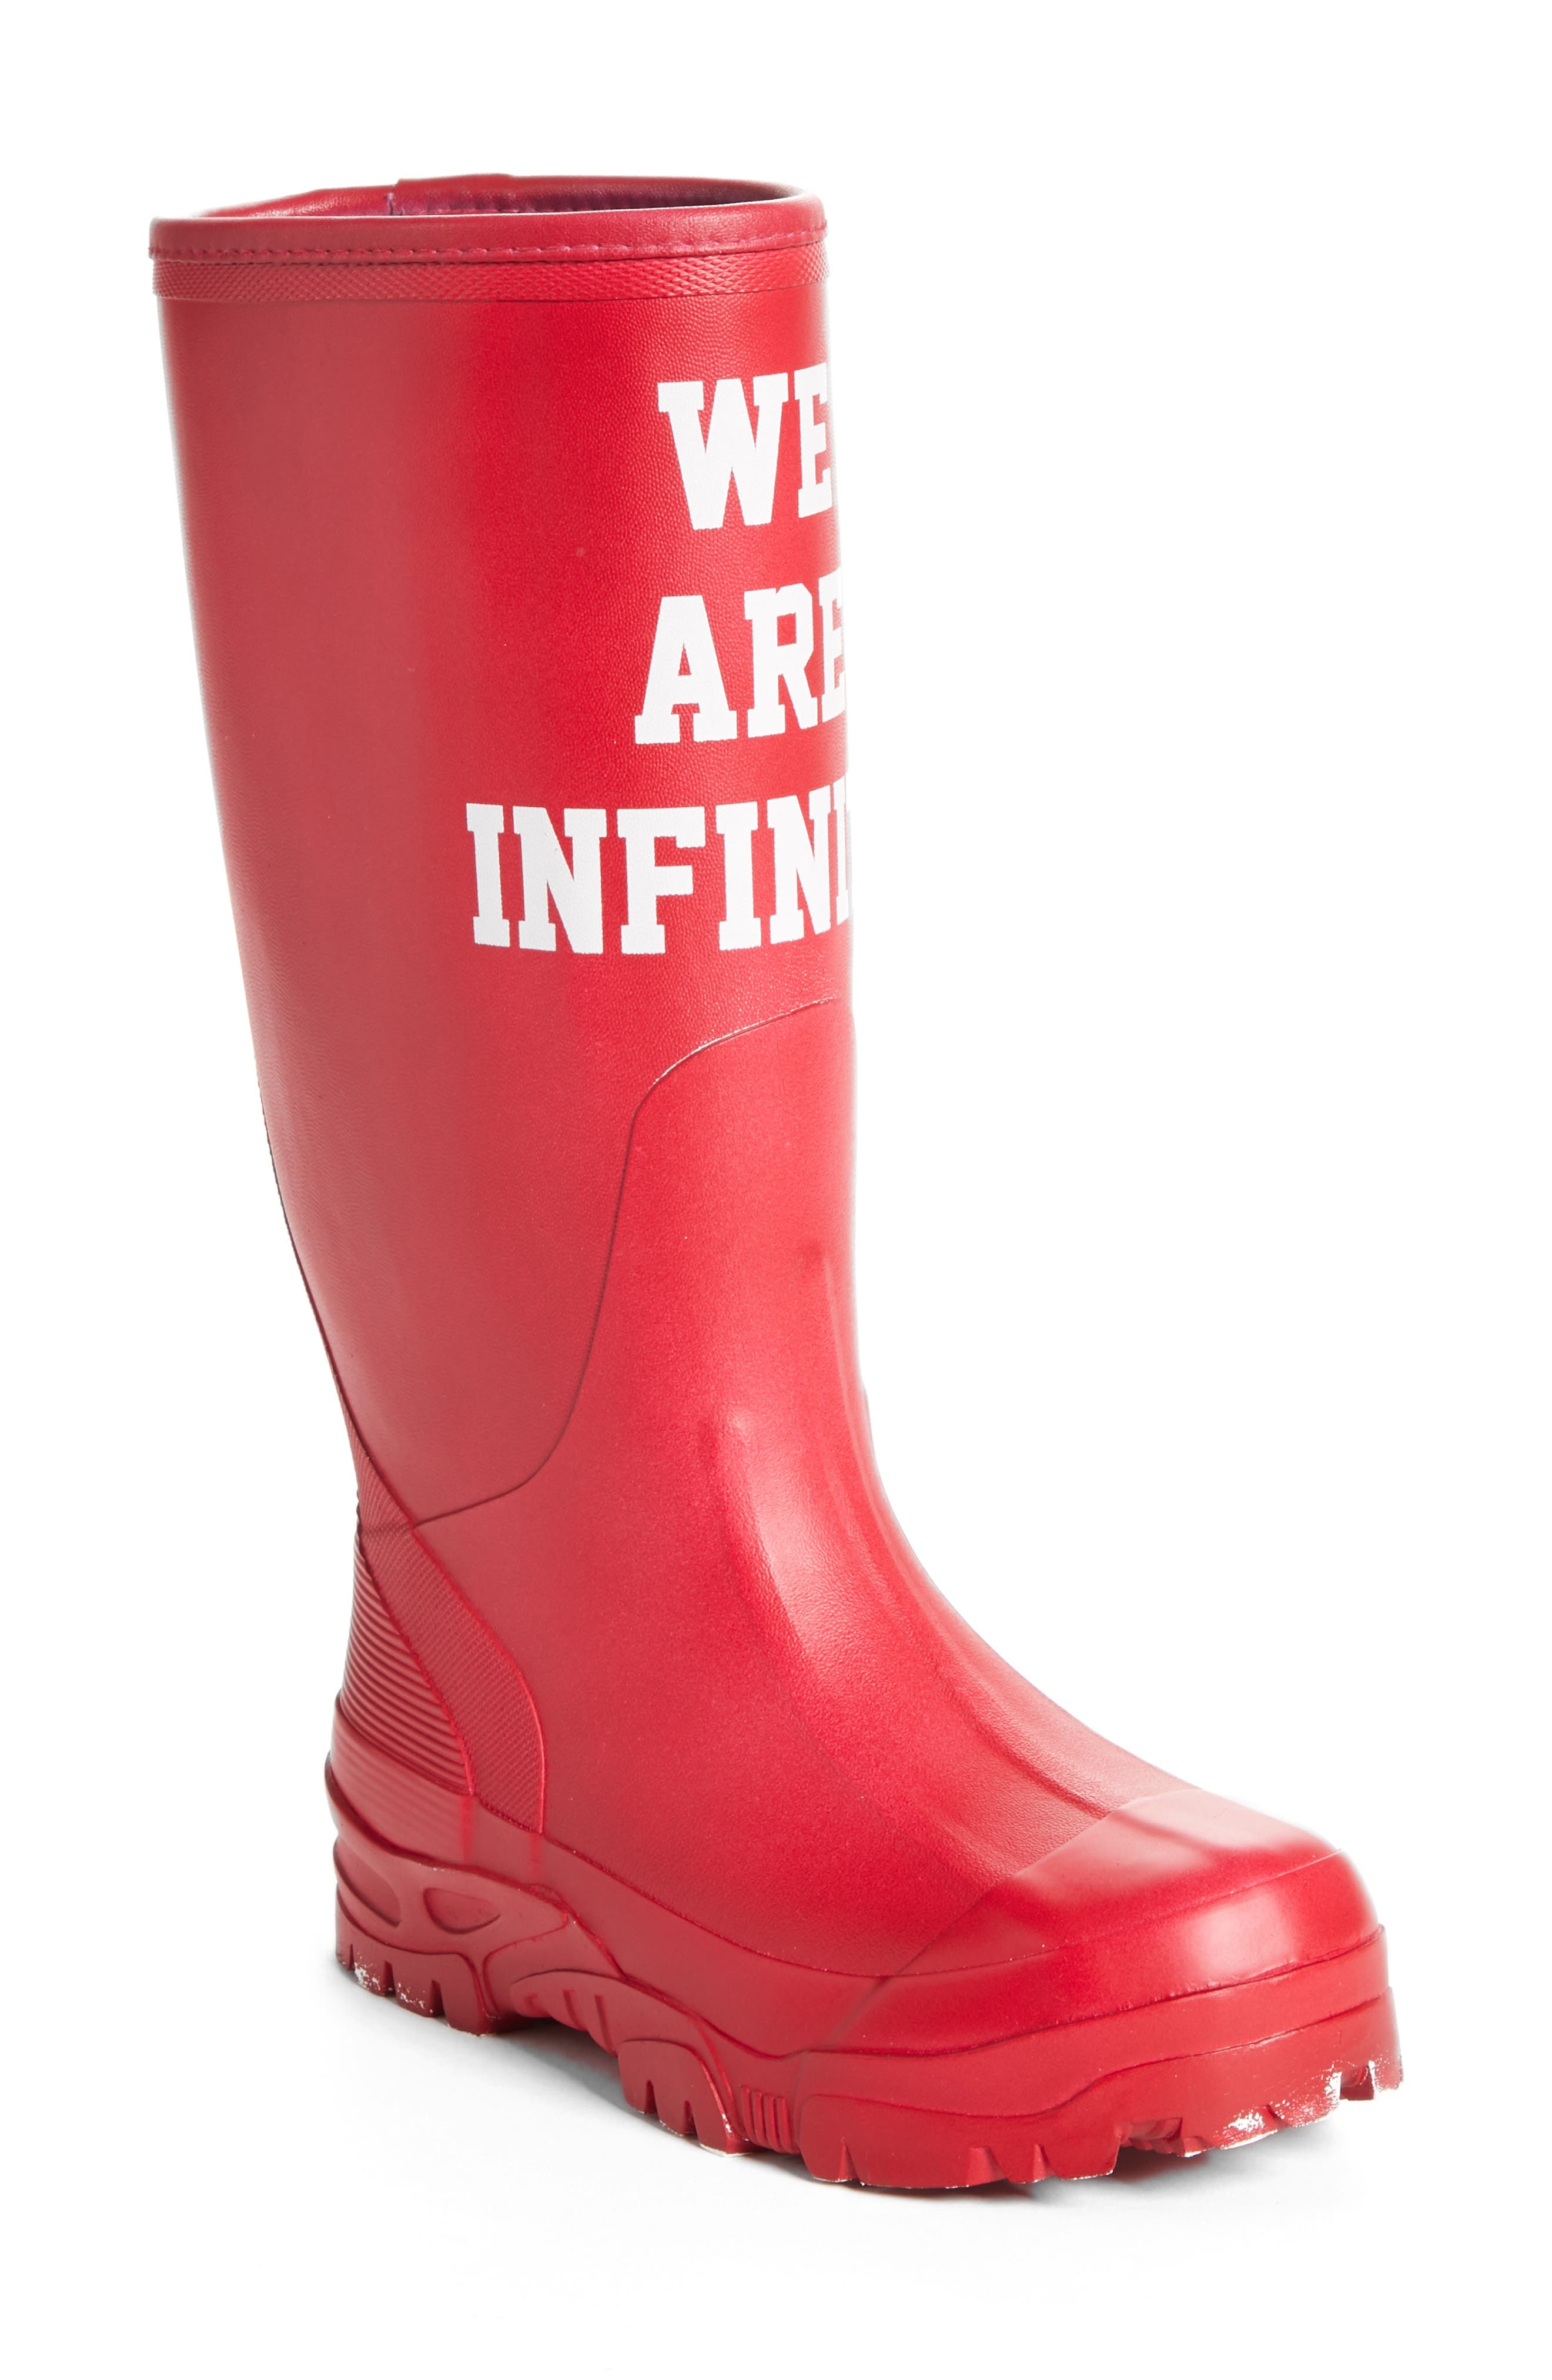 We Are Infinite Rubber Rain Boot in Red